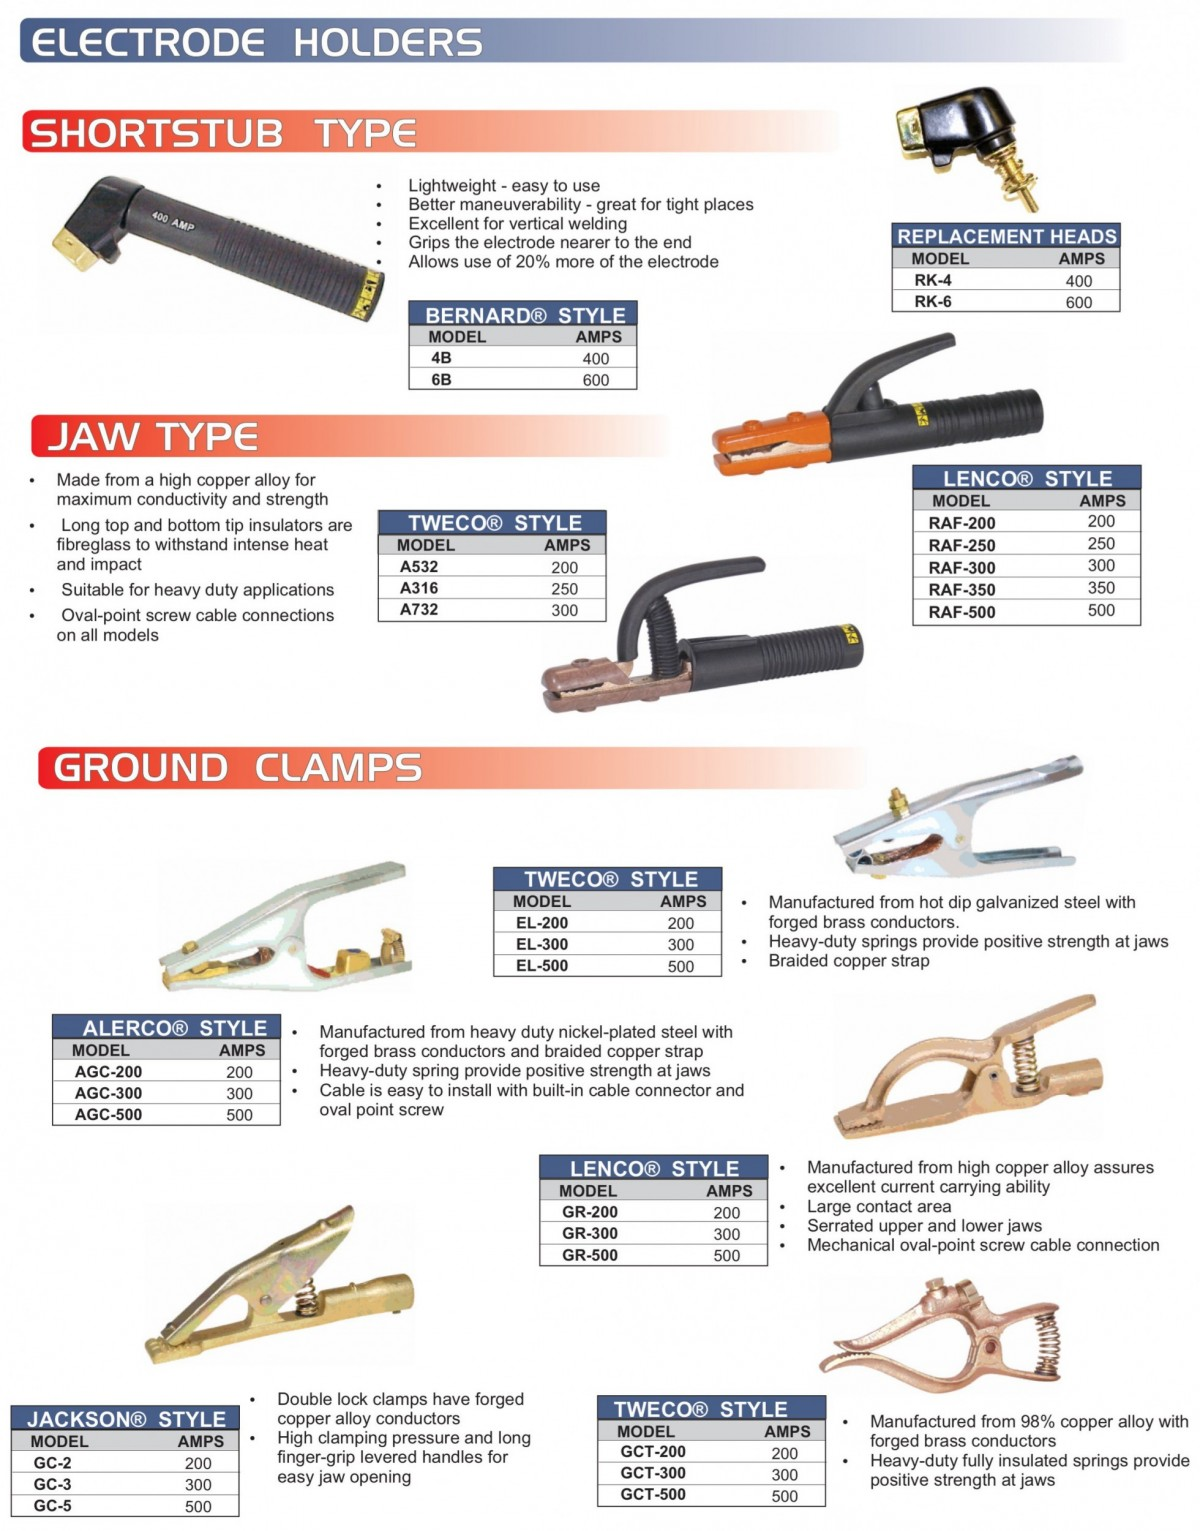 Electrode Holders & Ground Clamps